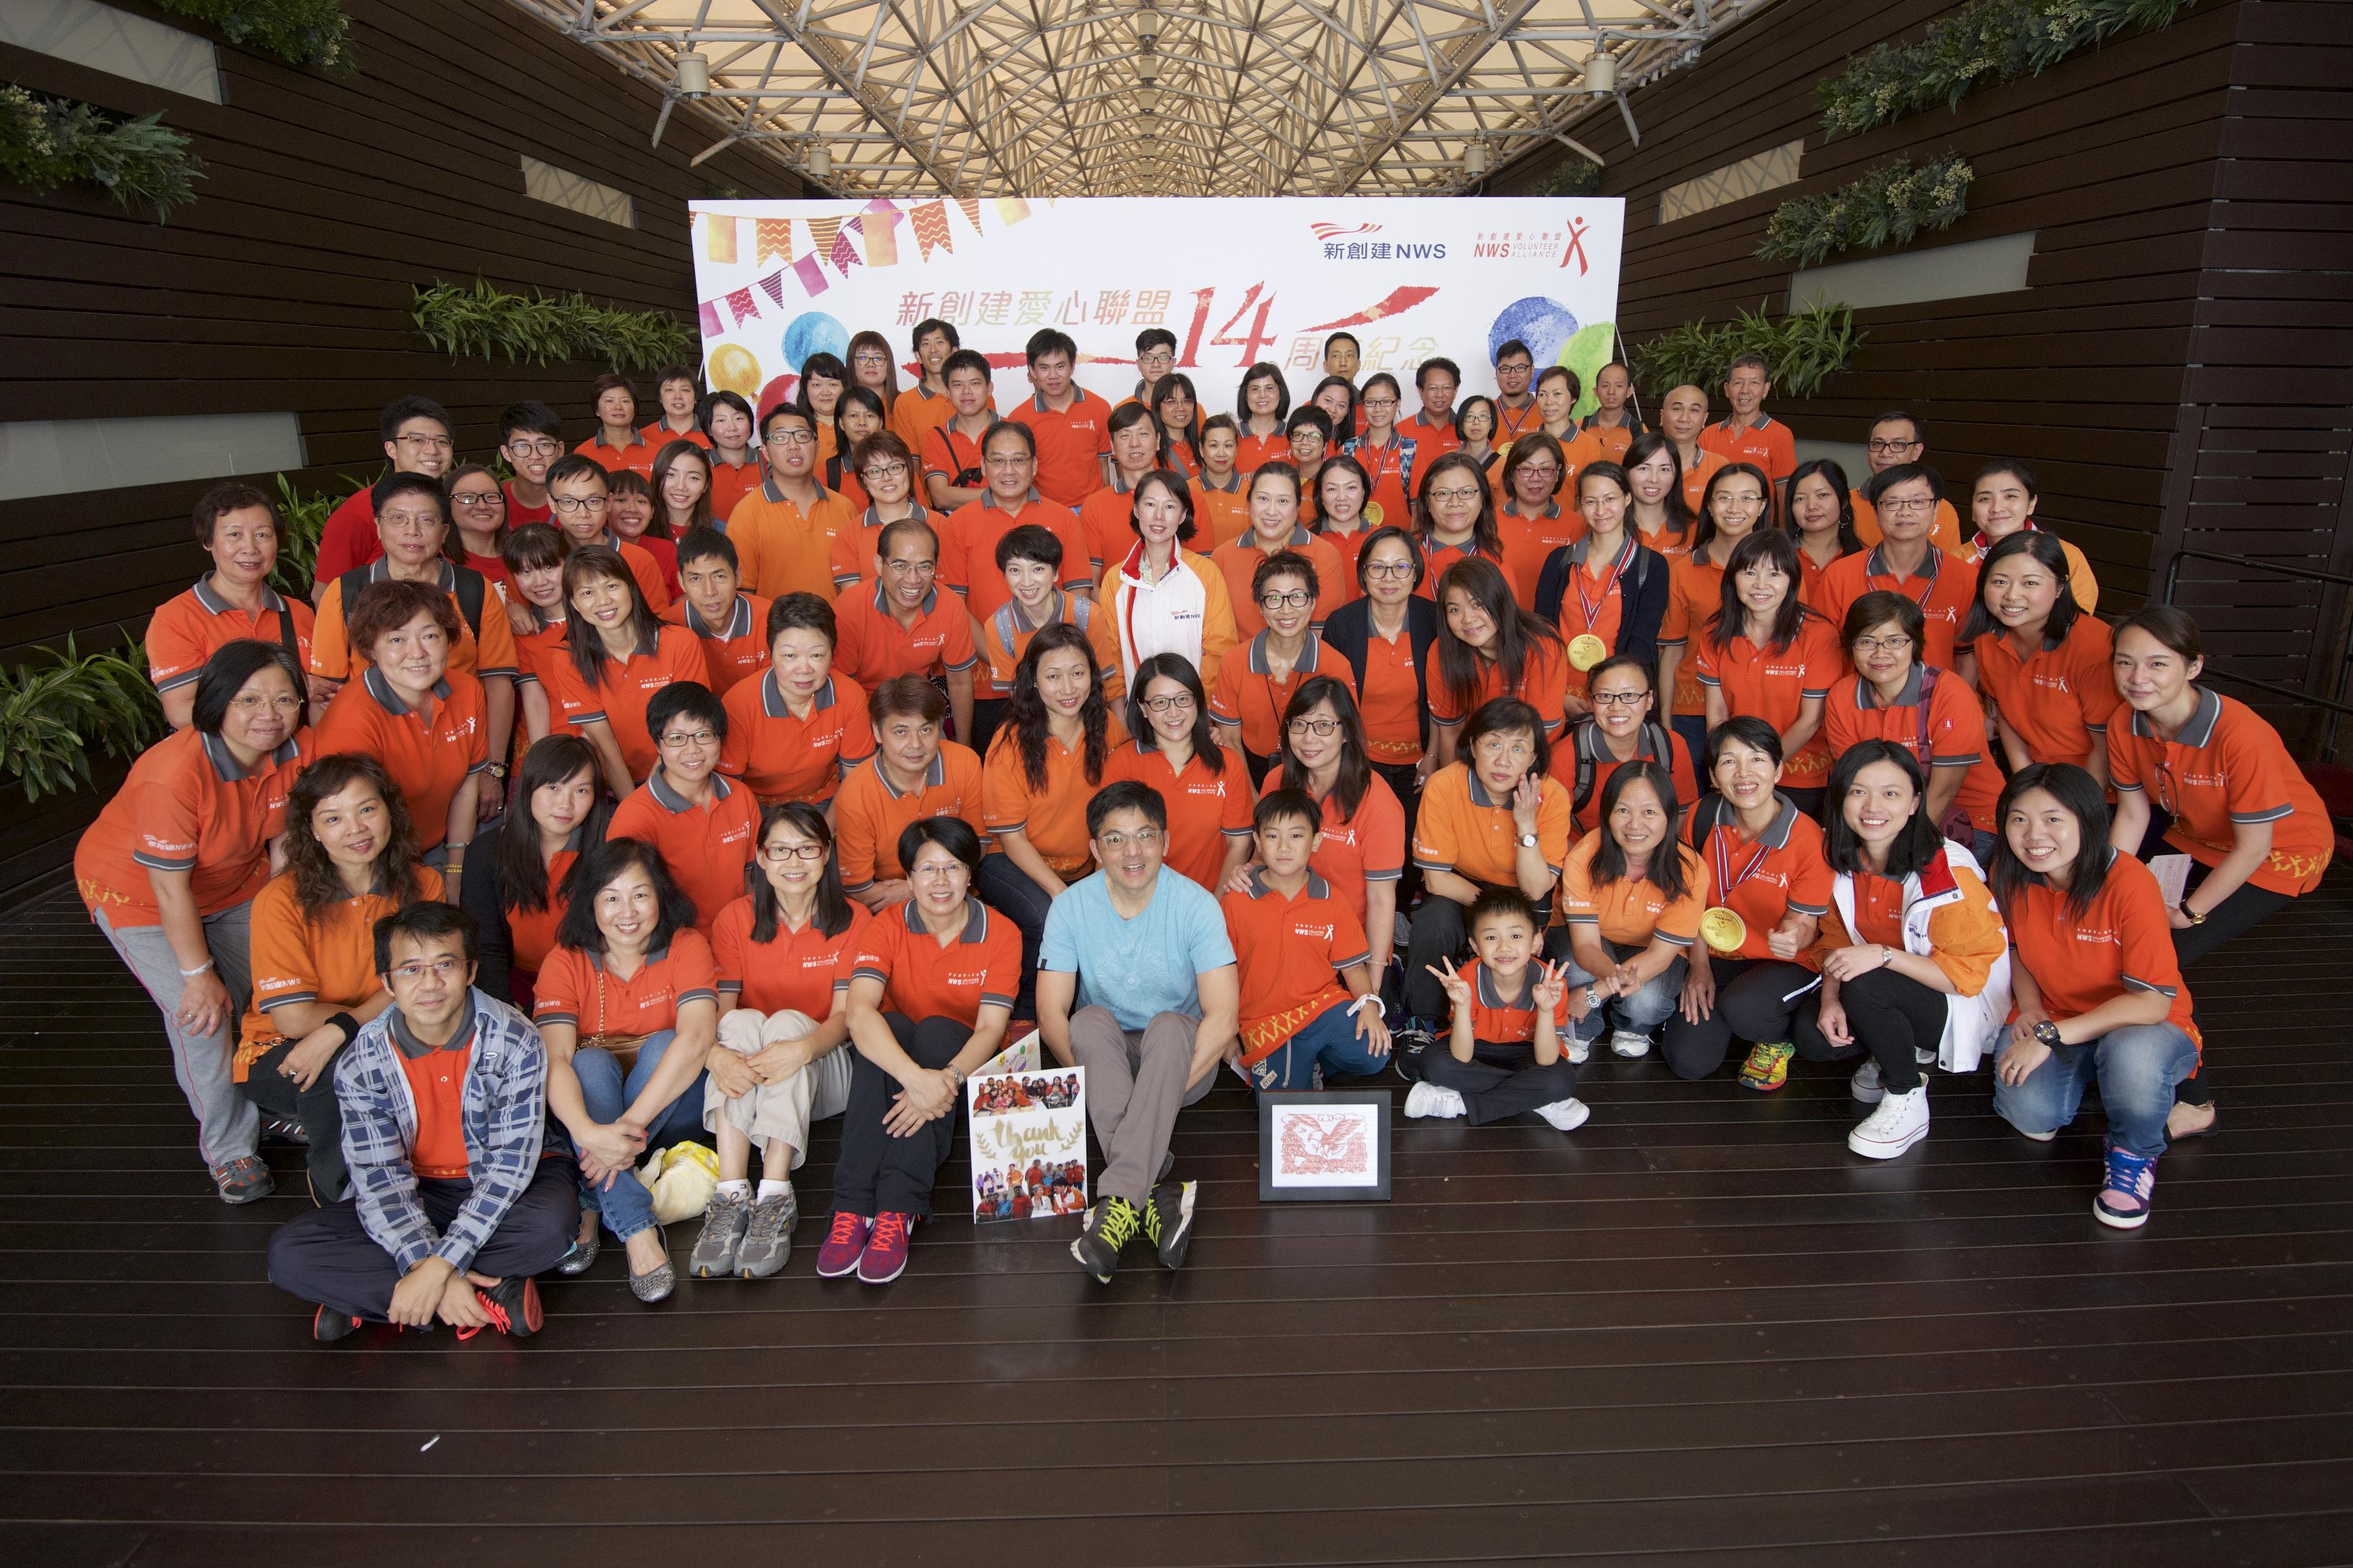 Press Release Photo-NWS wins fifth gold for volunteer team and first silver for enterprise category in Hong Kong Outstanding Corporate Citizenship Award Scheme